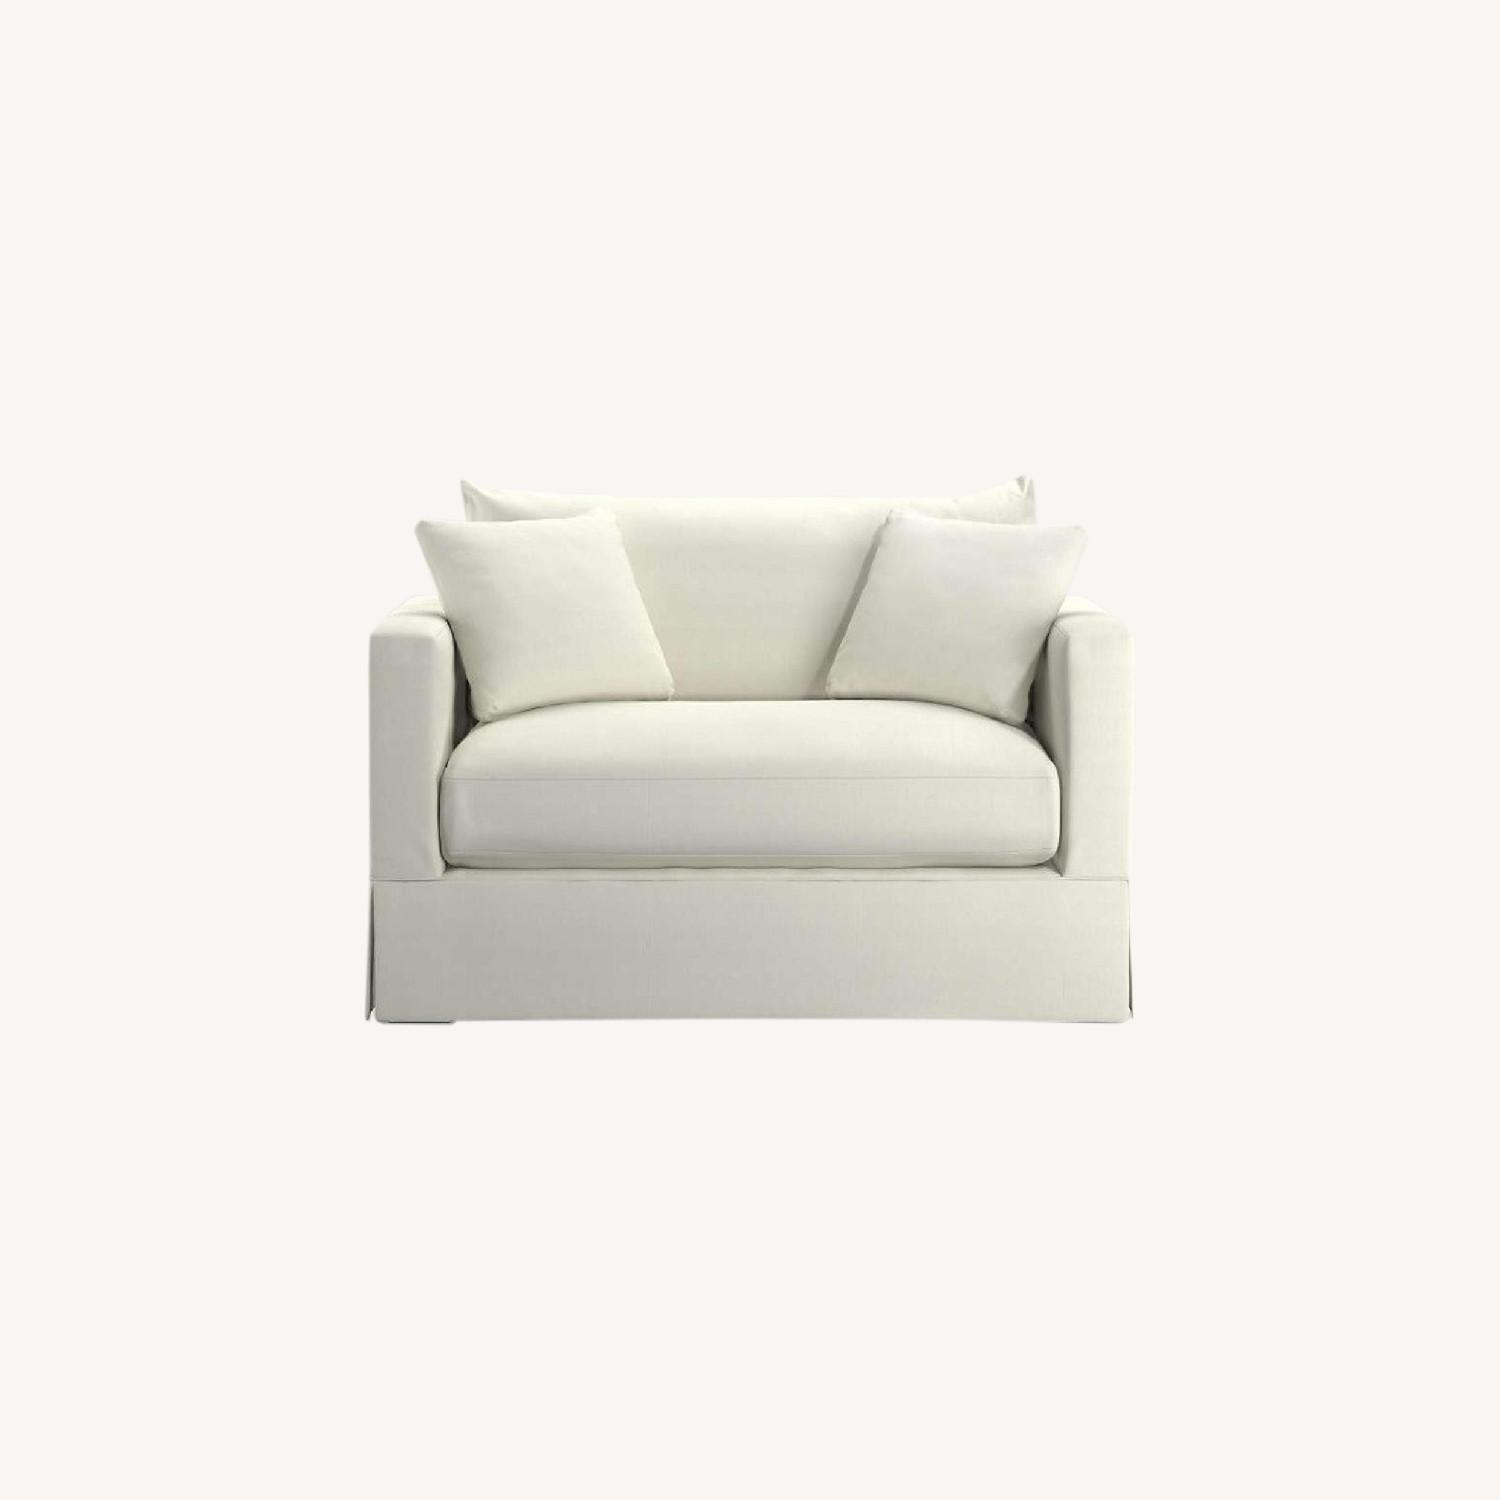 Crate & Barrel Extra Large White Linen Chair - image-0